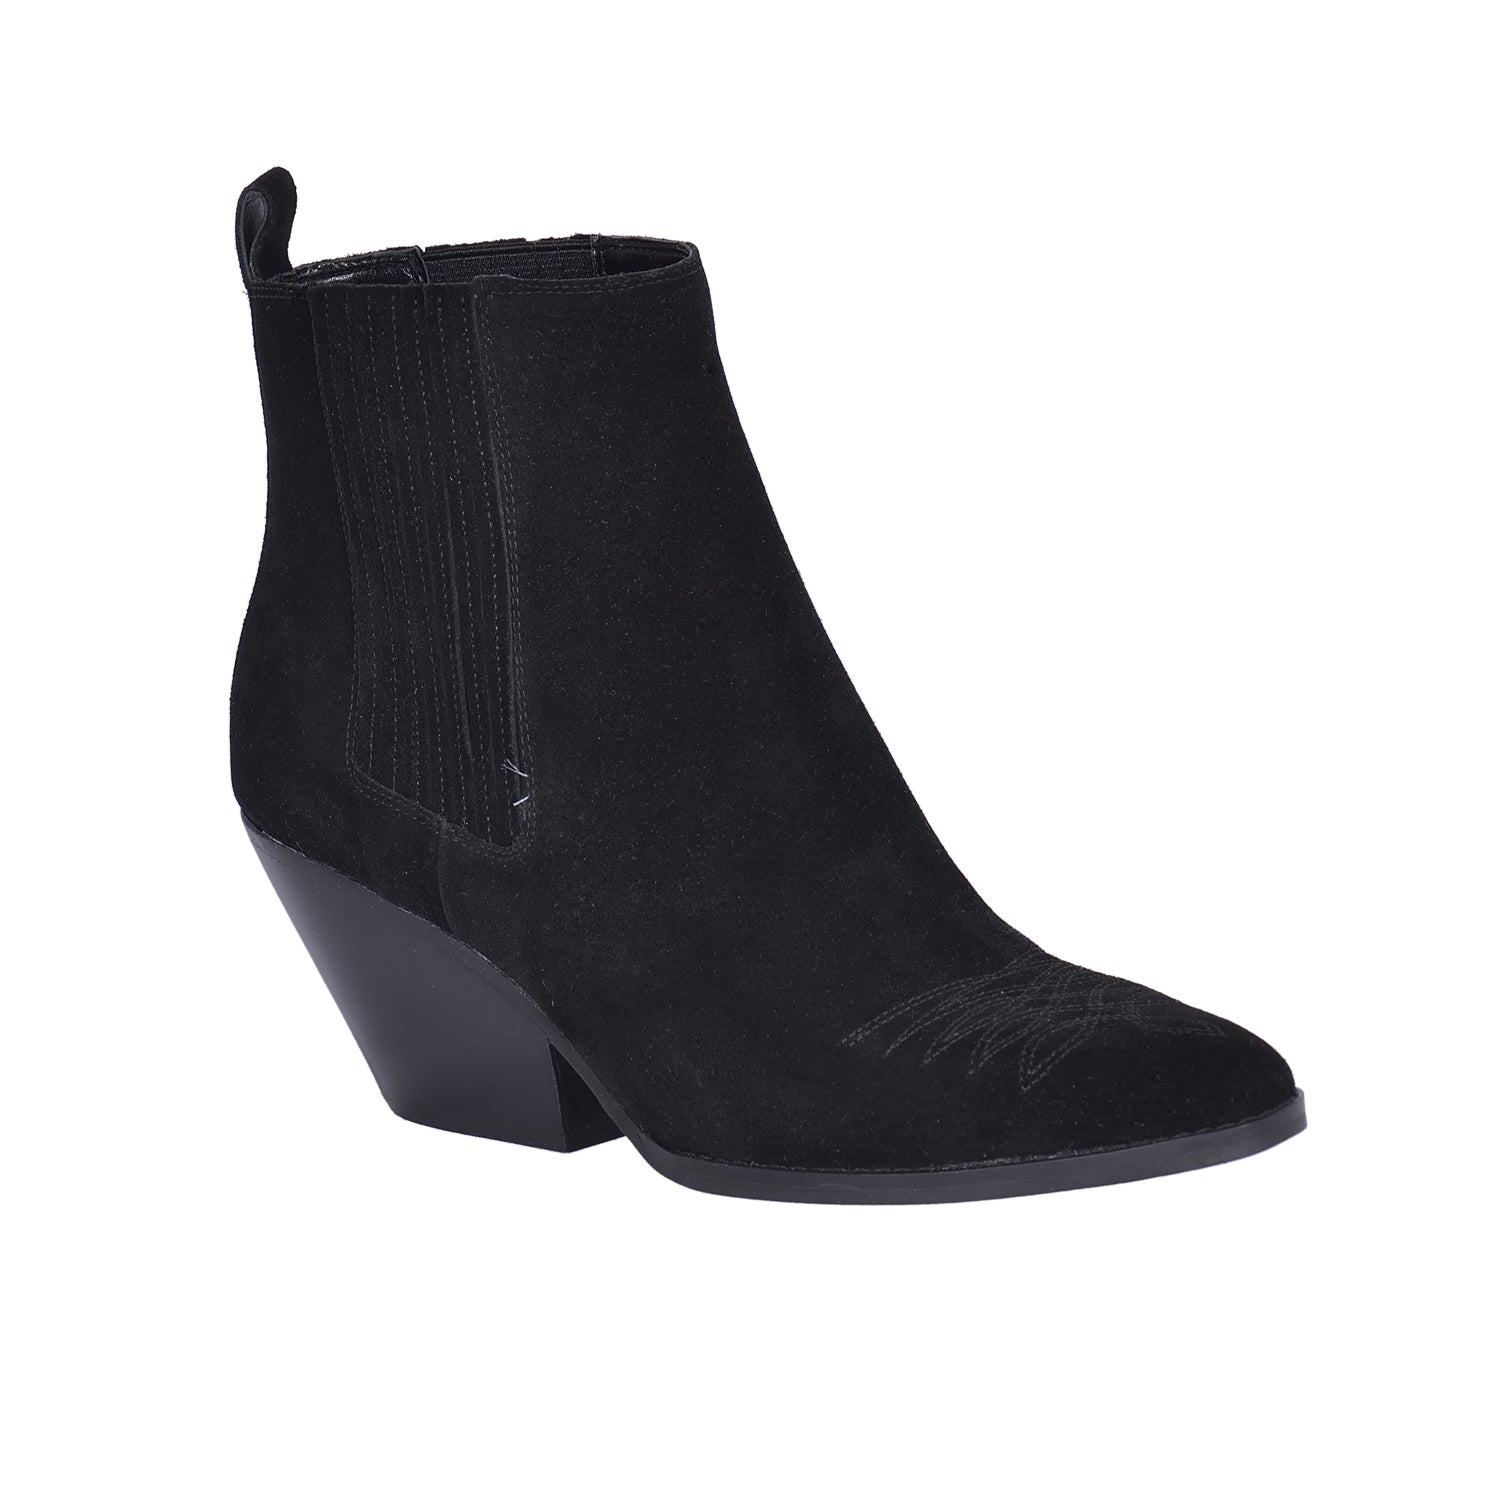 MICHAEL KORS Black Sinclair Heeled Ankle Boots